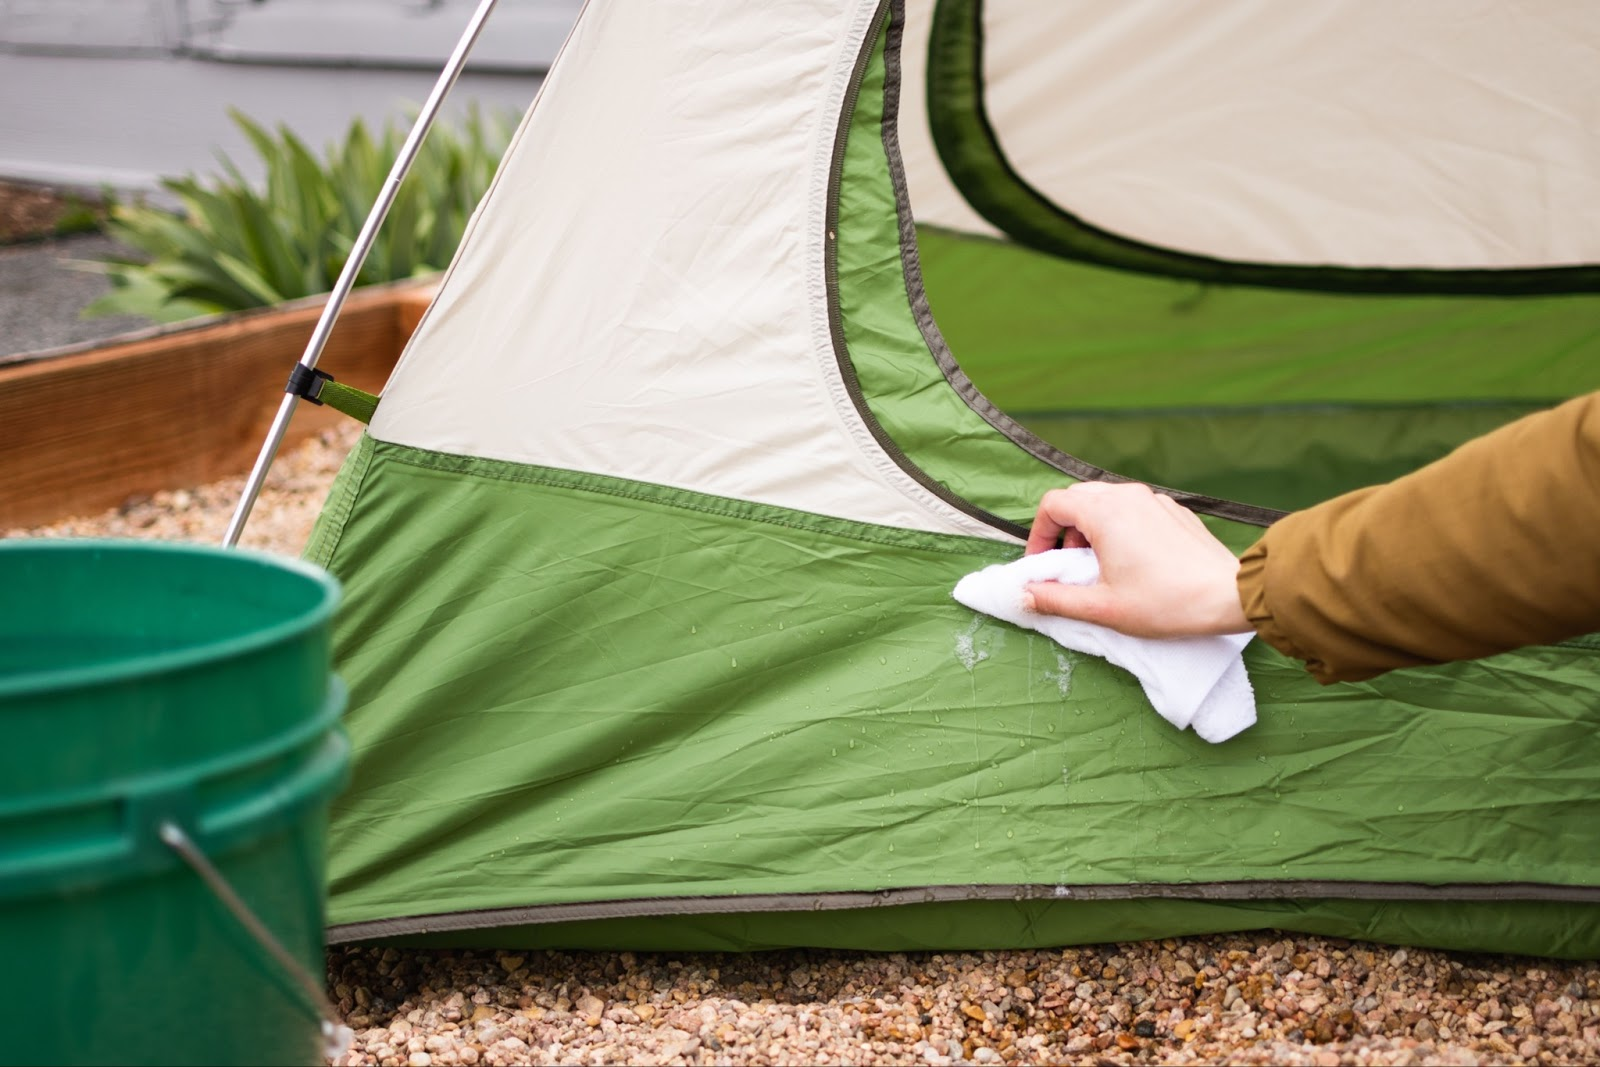 How To Fold A Tent